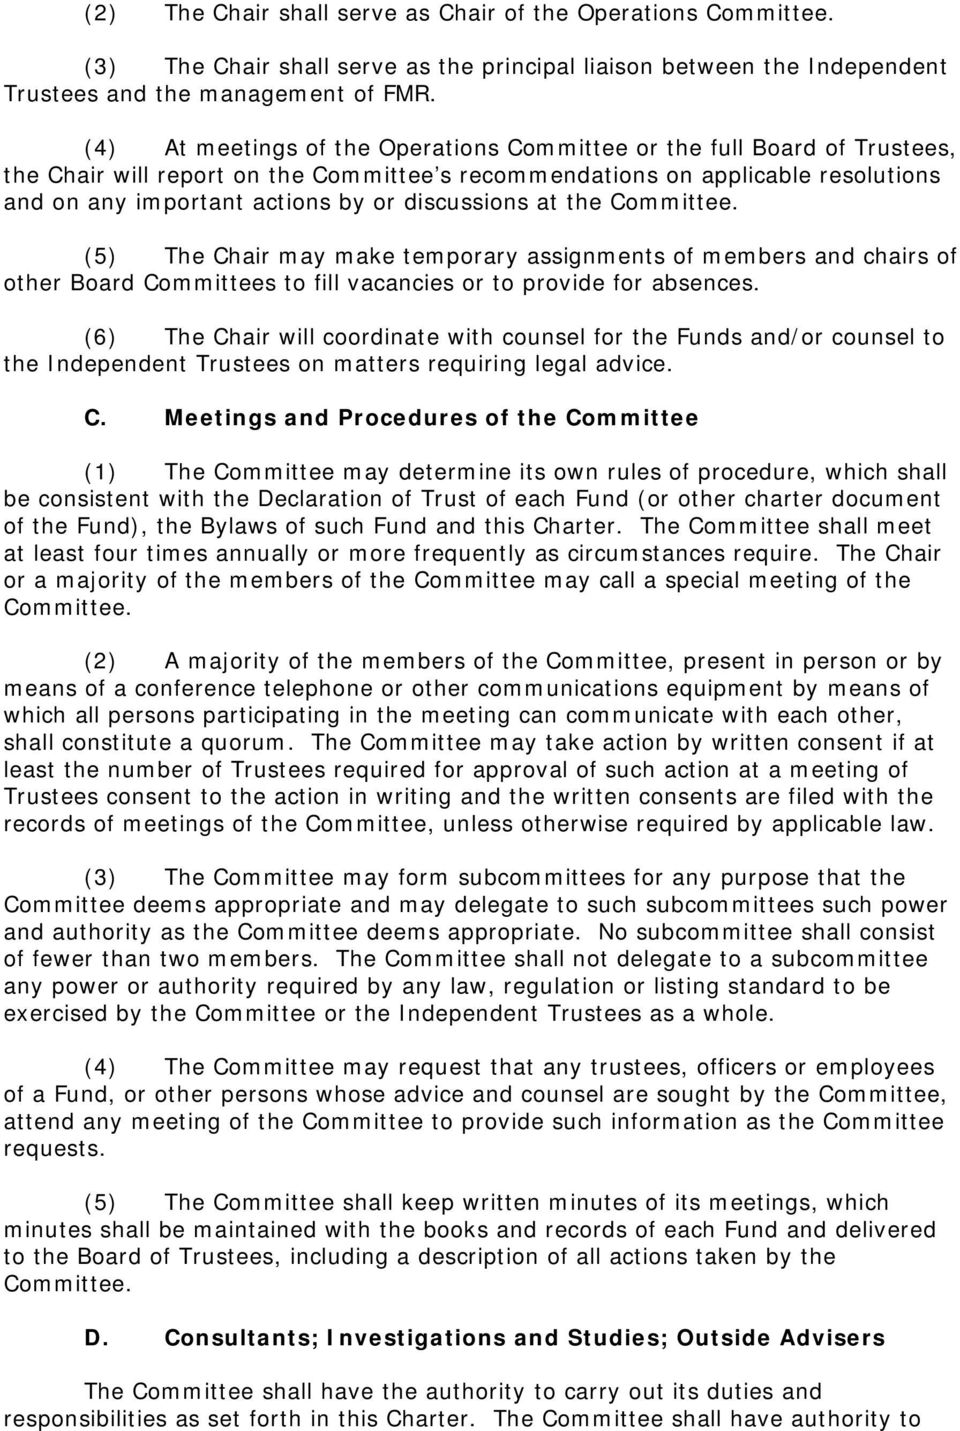 discussions at the Committee. (5) The Chair may make temporary assignments of members and chairs of other Board Committees to fill vacancies or to provide for absences.